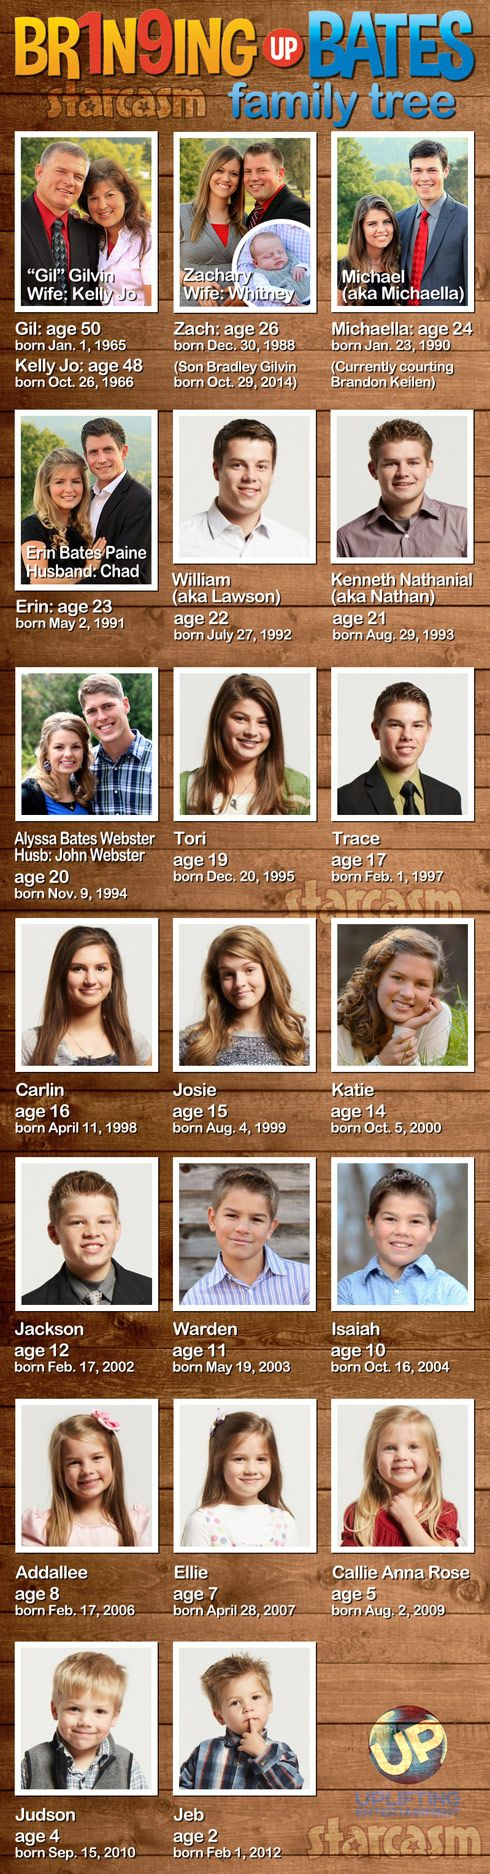 UP TV Bringing Up Bates Family tree with photos ages and birthdays